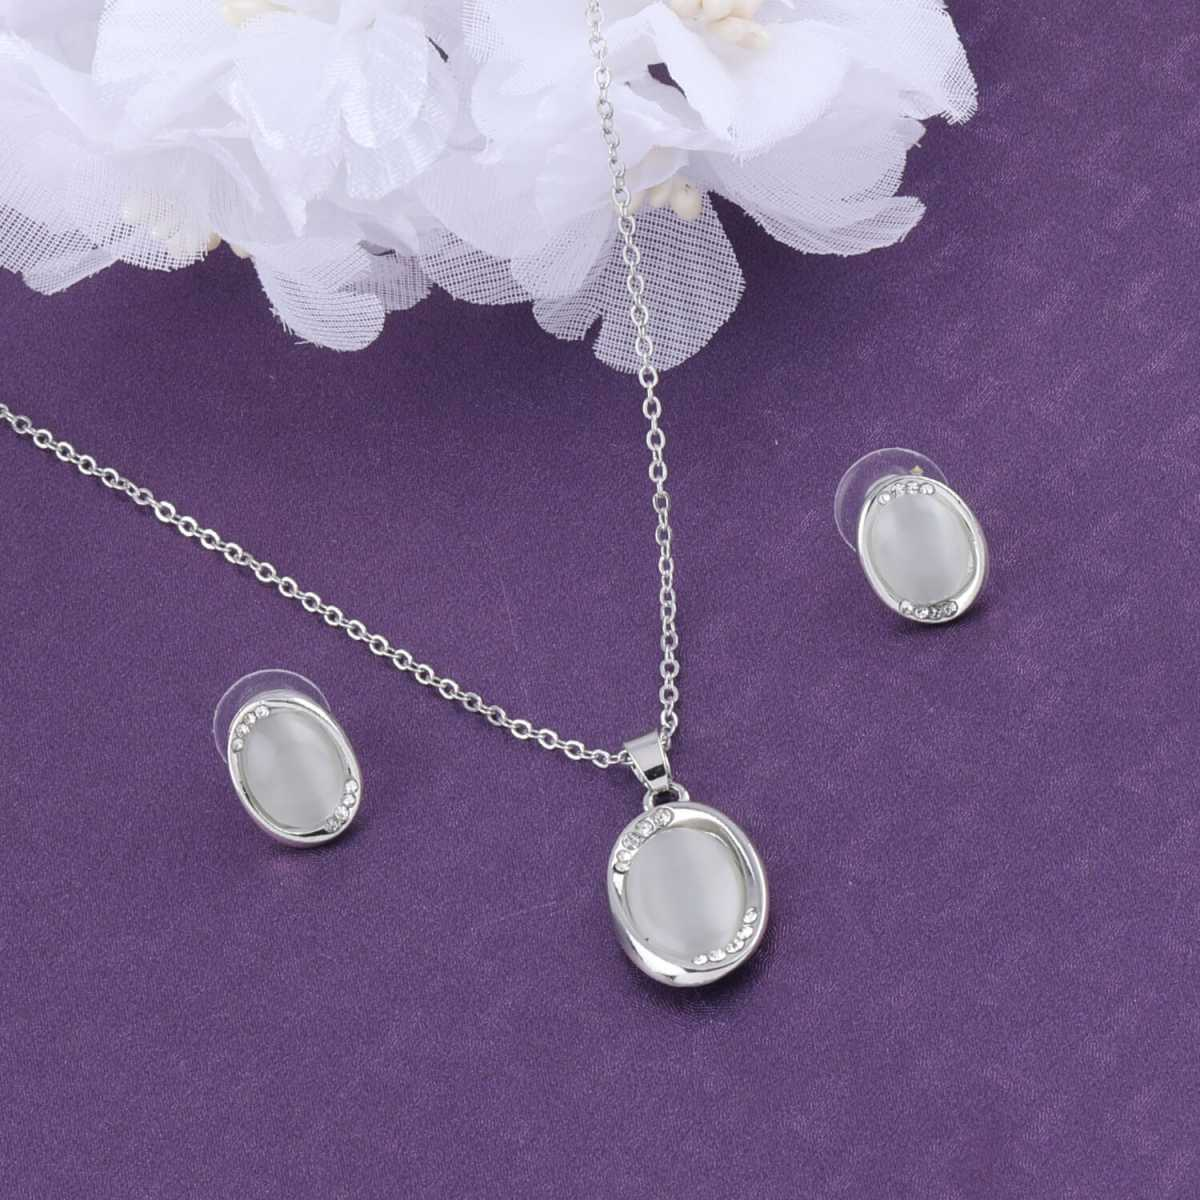 SILVER SHINE Delicate Silver Plated  Stylish  Pendant Set For Women Girl